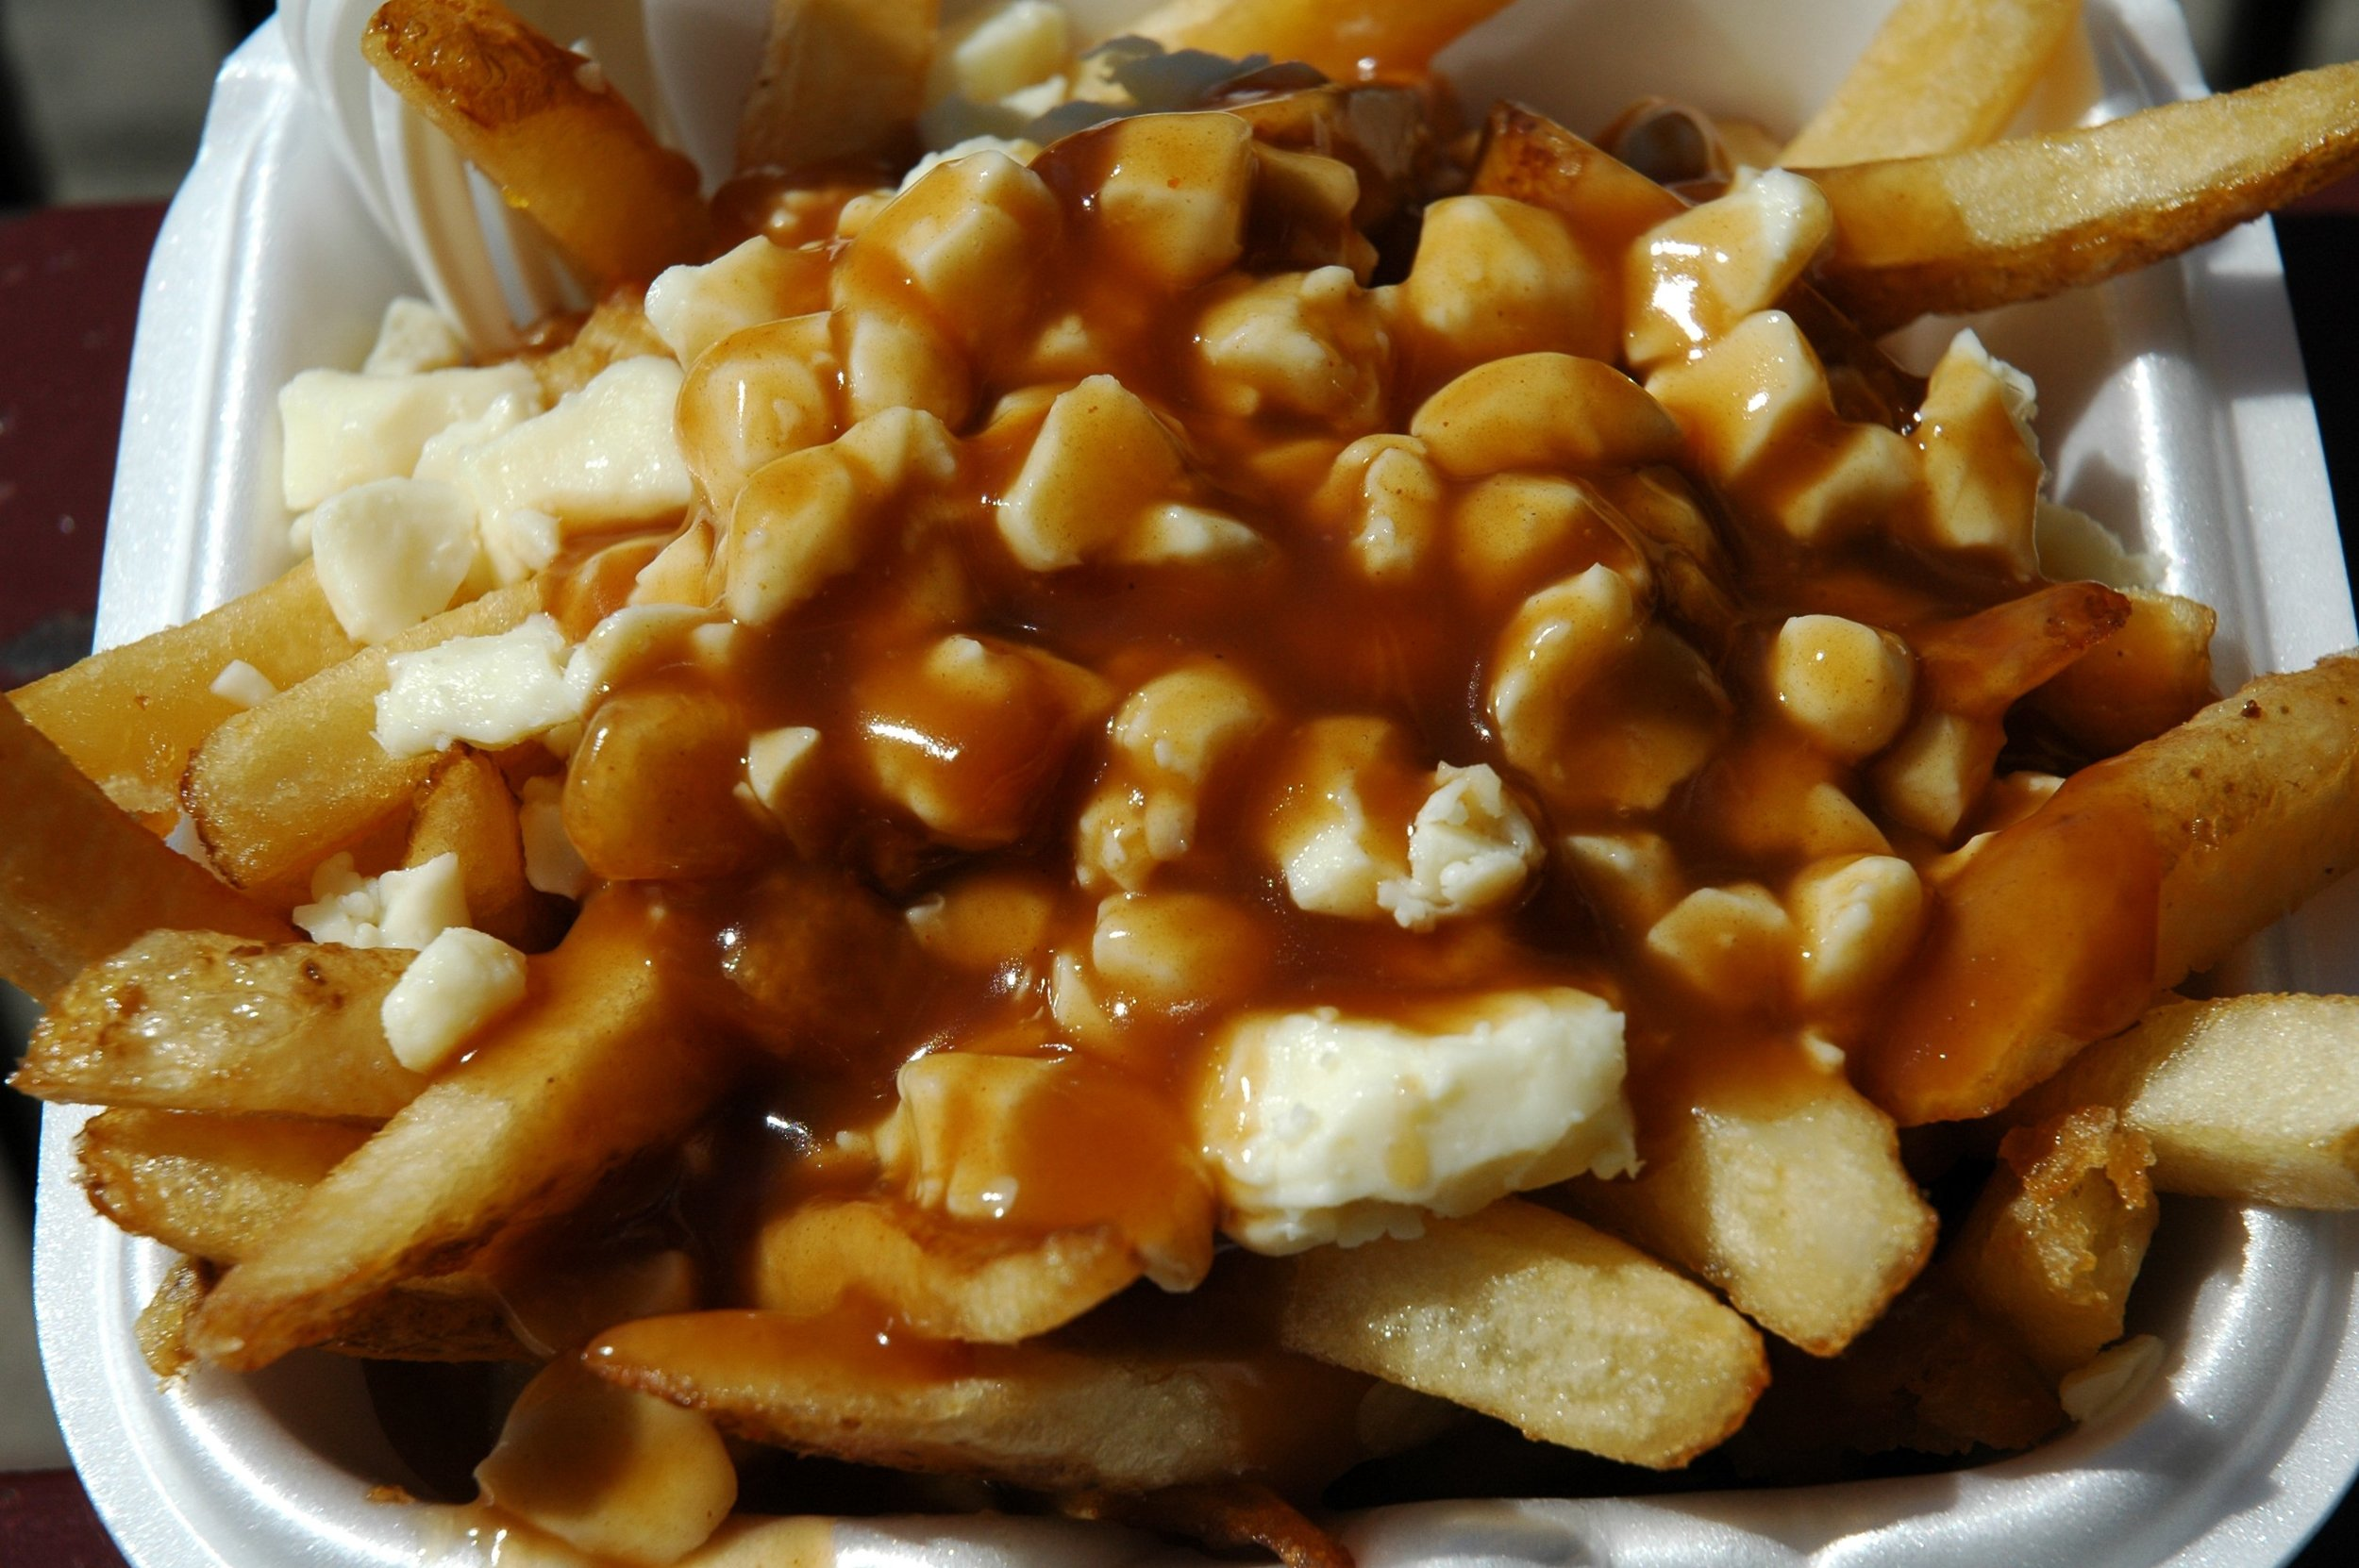 Poutine: Dear Quebec, Thank you. Sincerely, Everybody